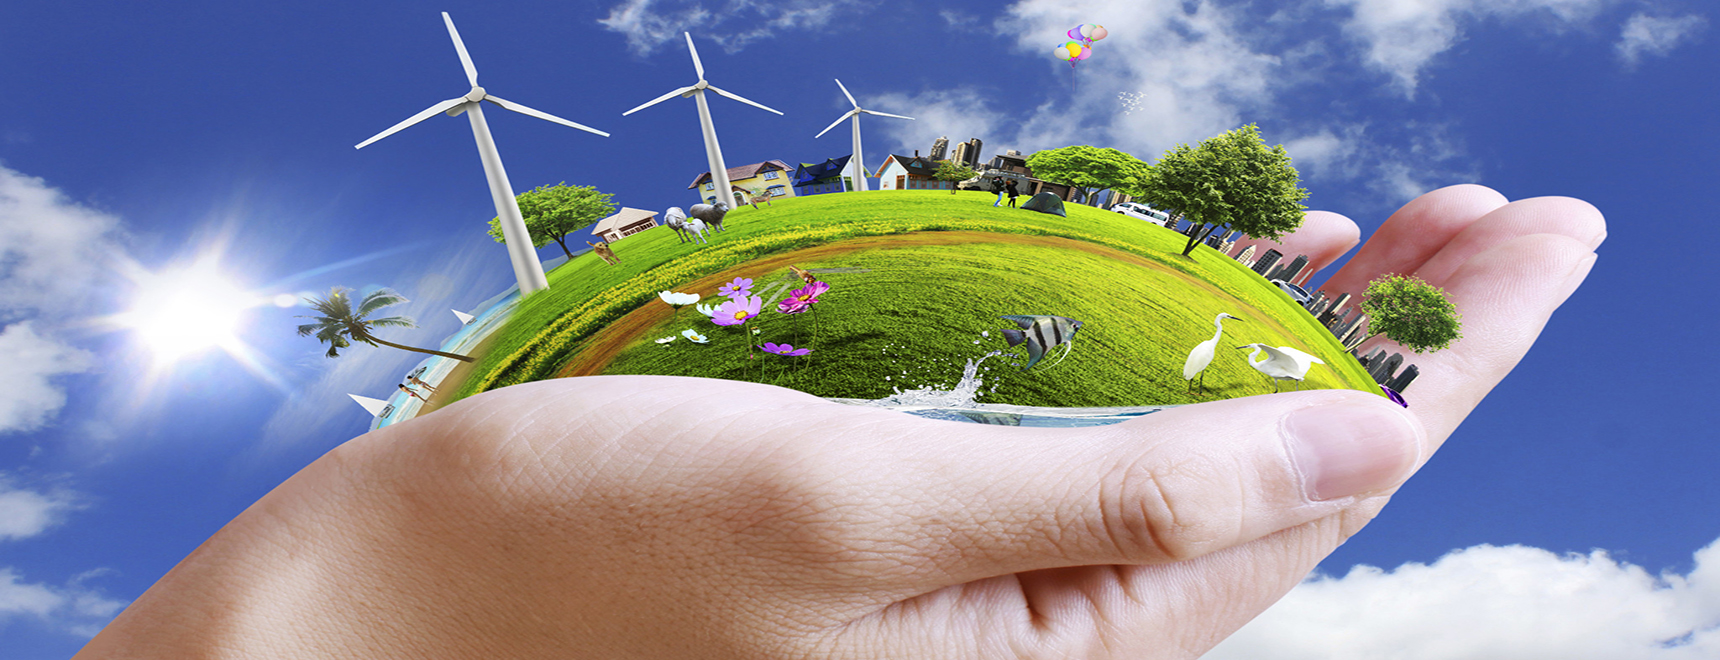 Our purpose is to work for the solution of environmental problems